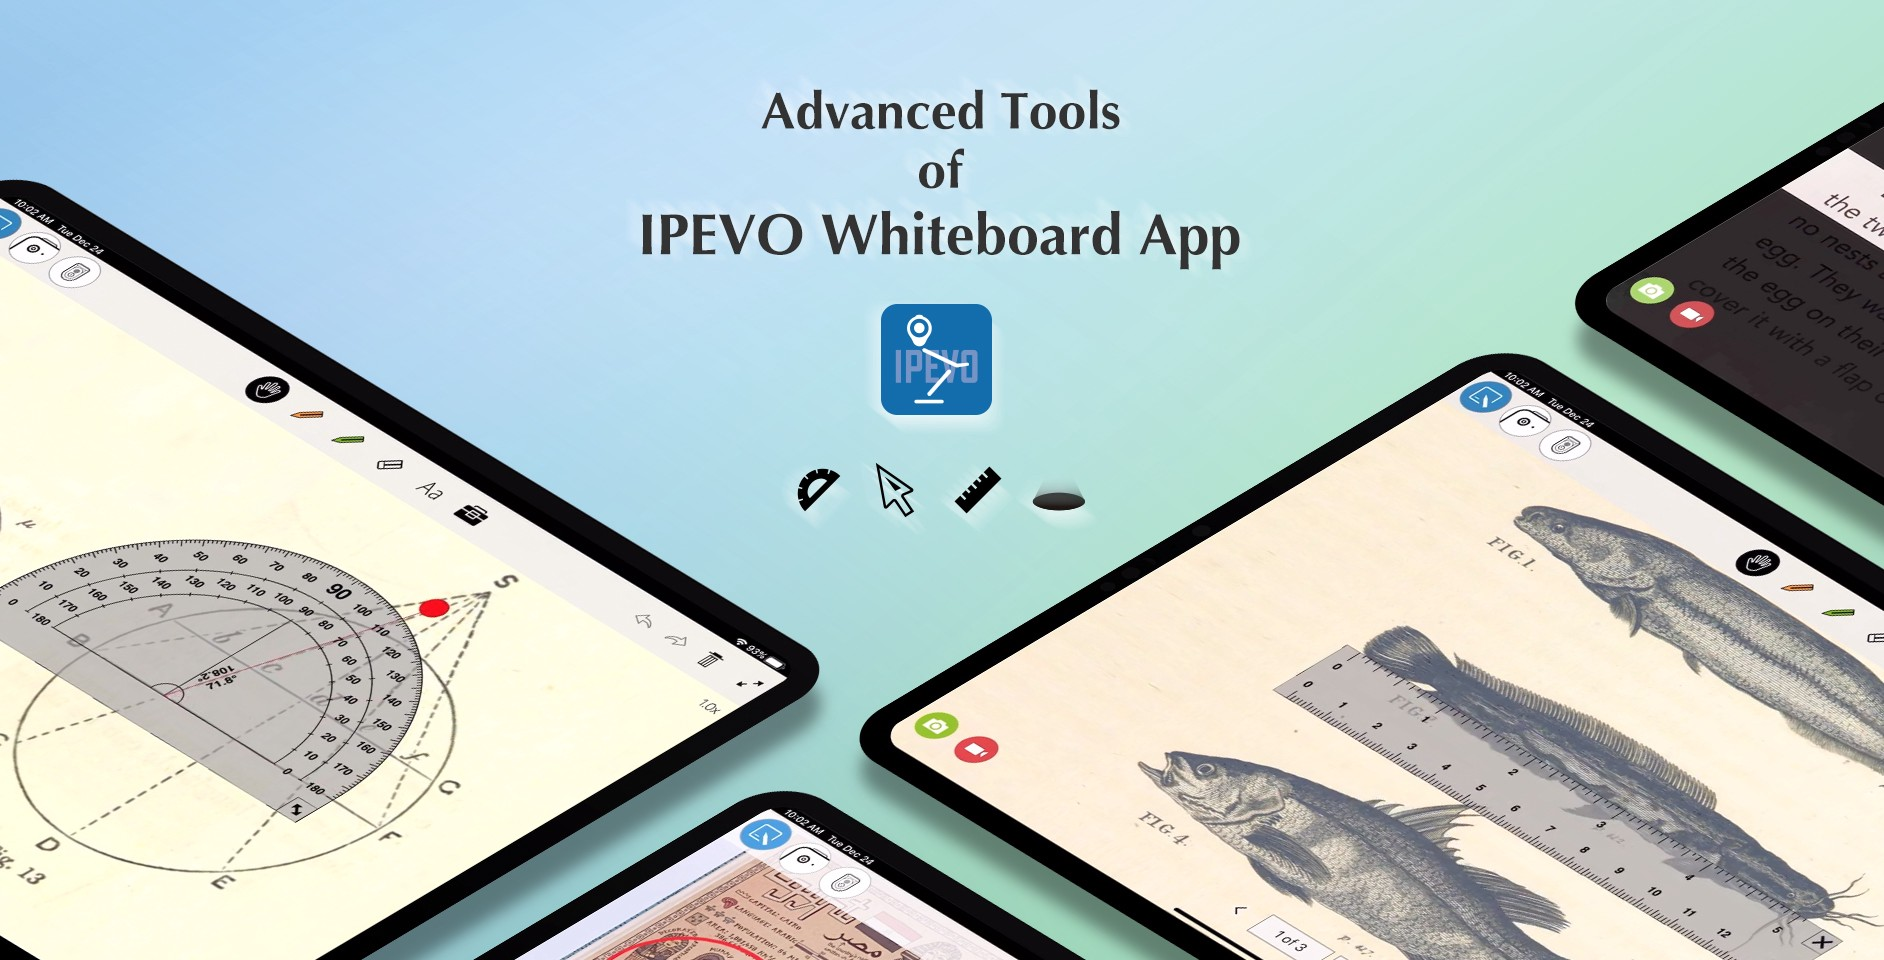 Check out the Advanced Tools of IPEVO Whiteboard app